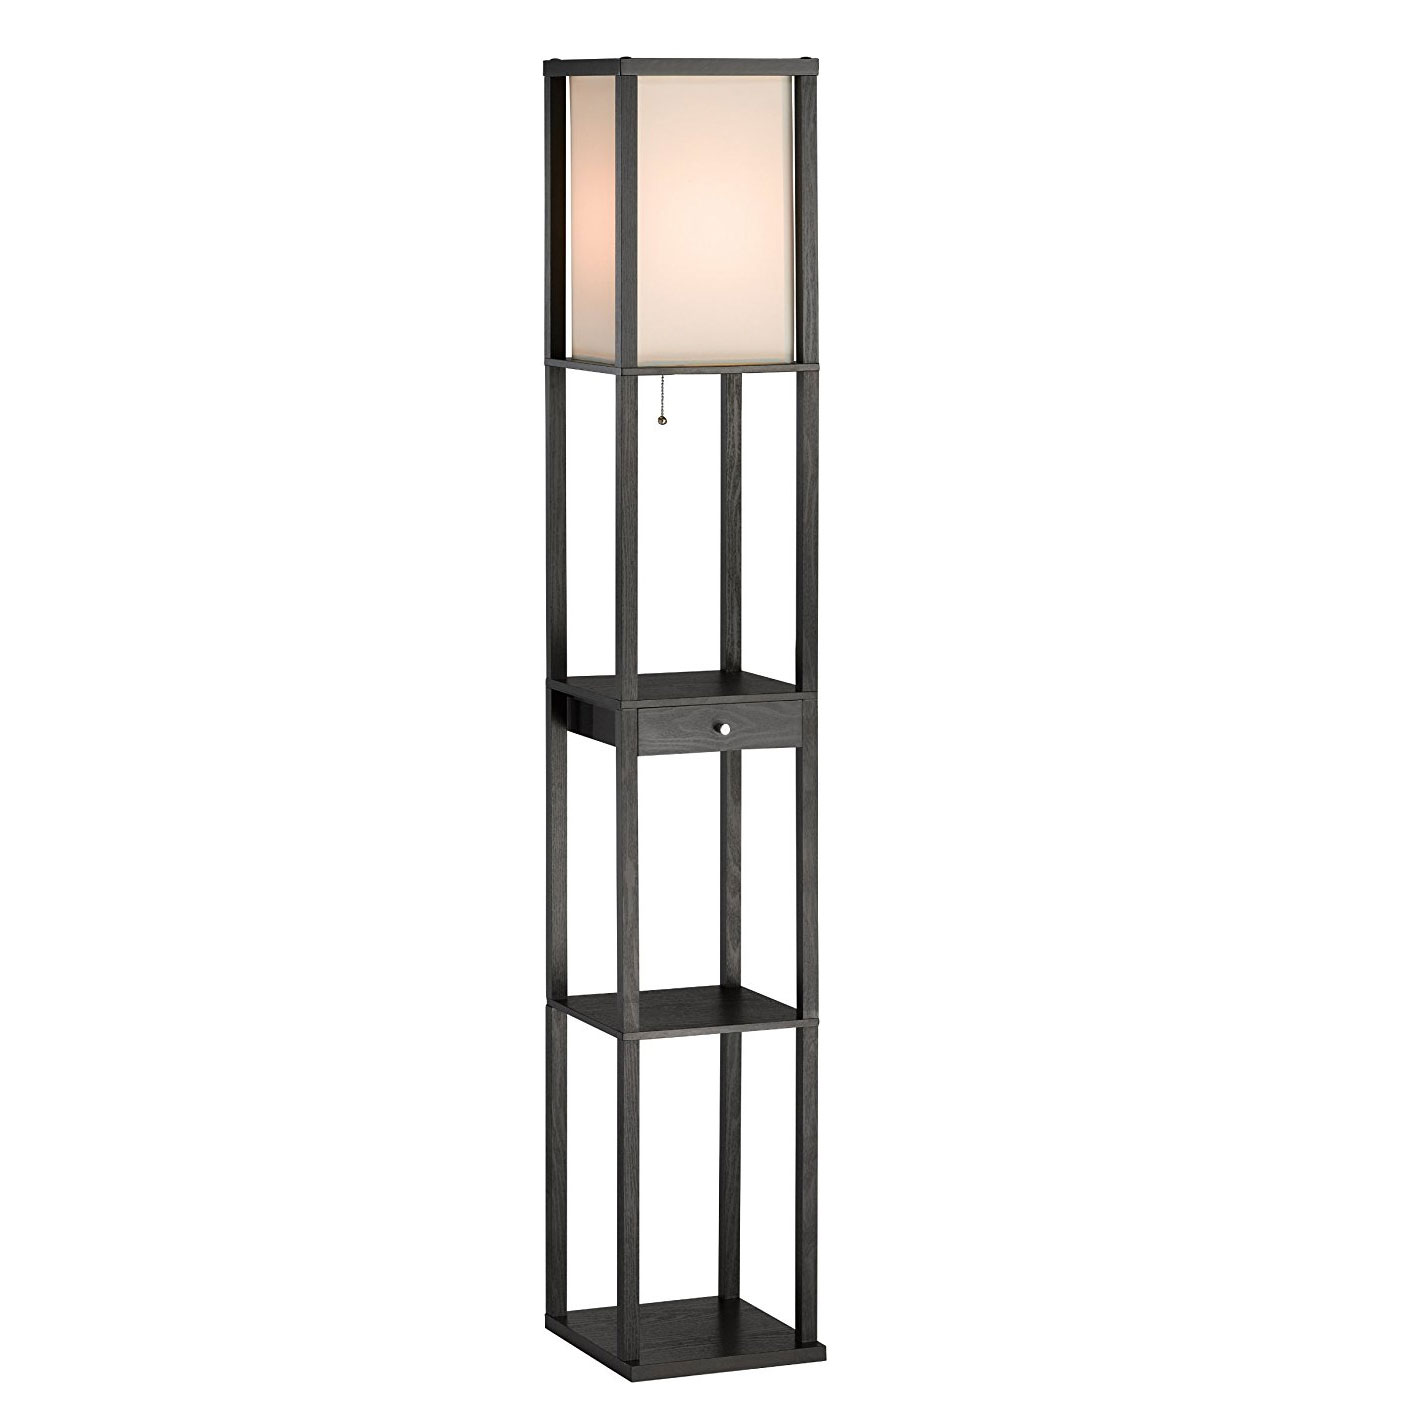 Click here to buy Adesso Parker 3133 Shelf Lamp with Drawer Black by Adesso.